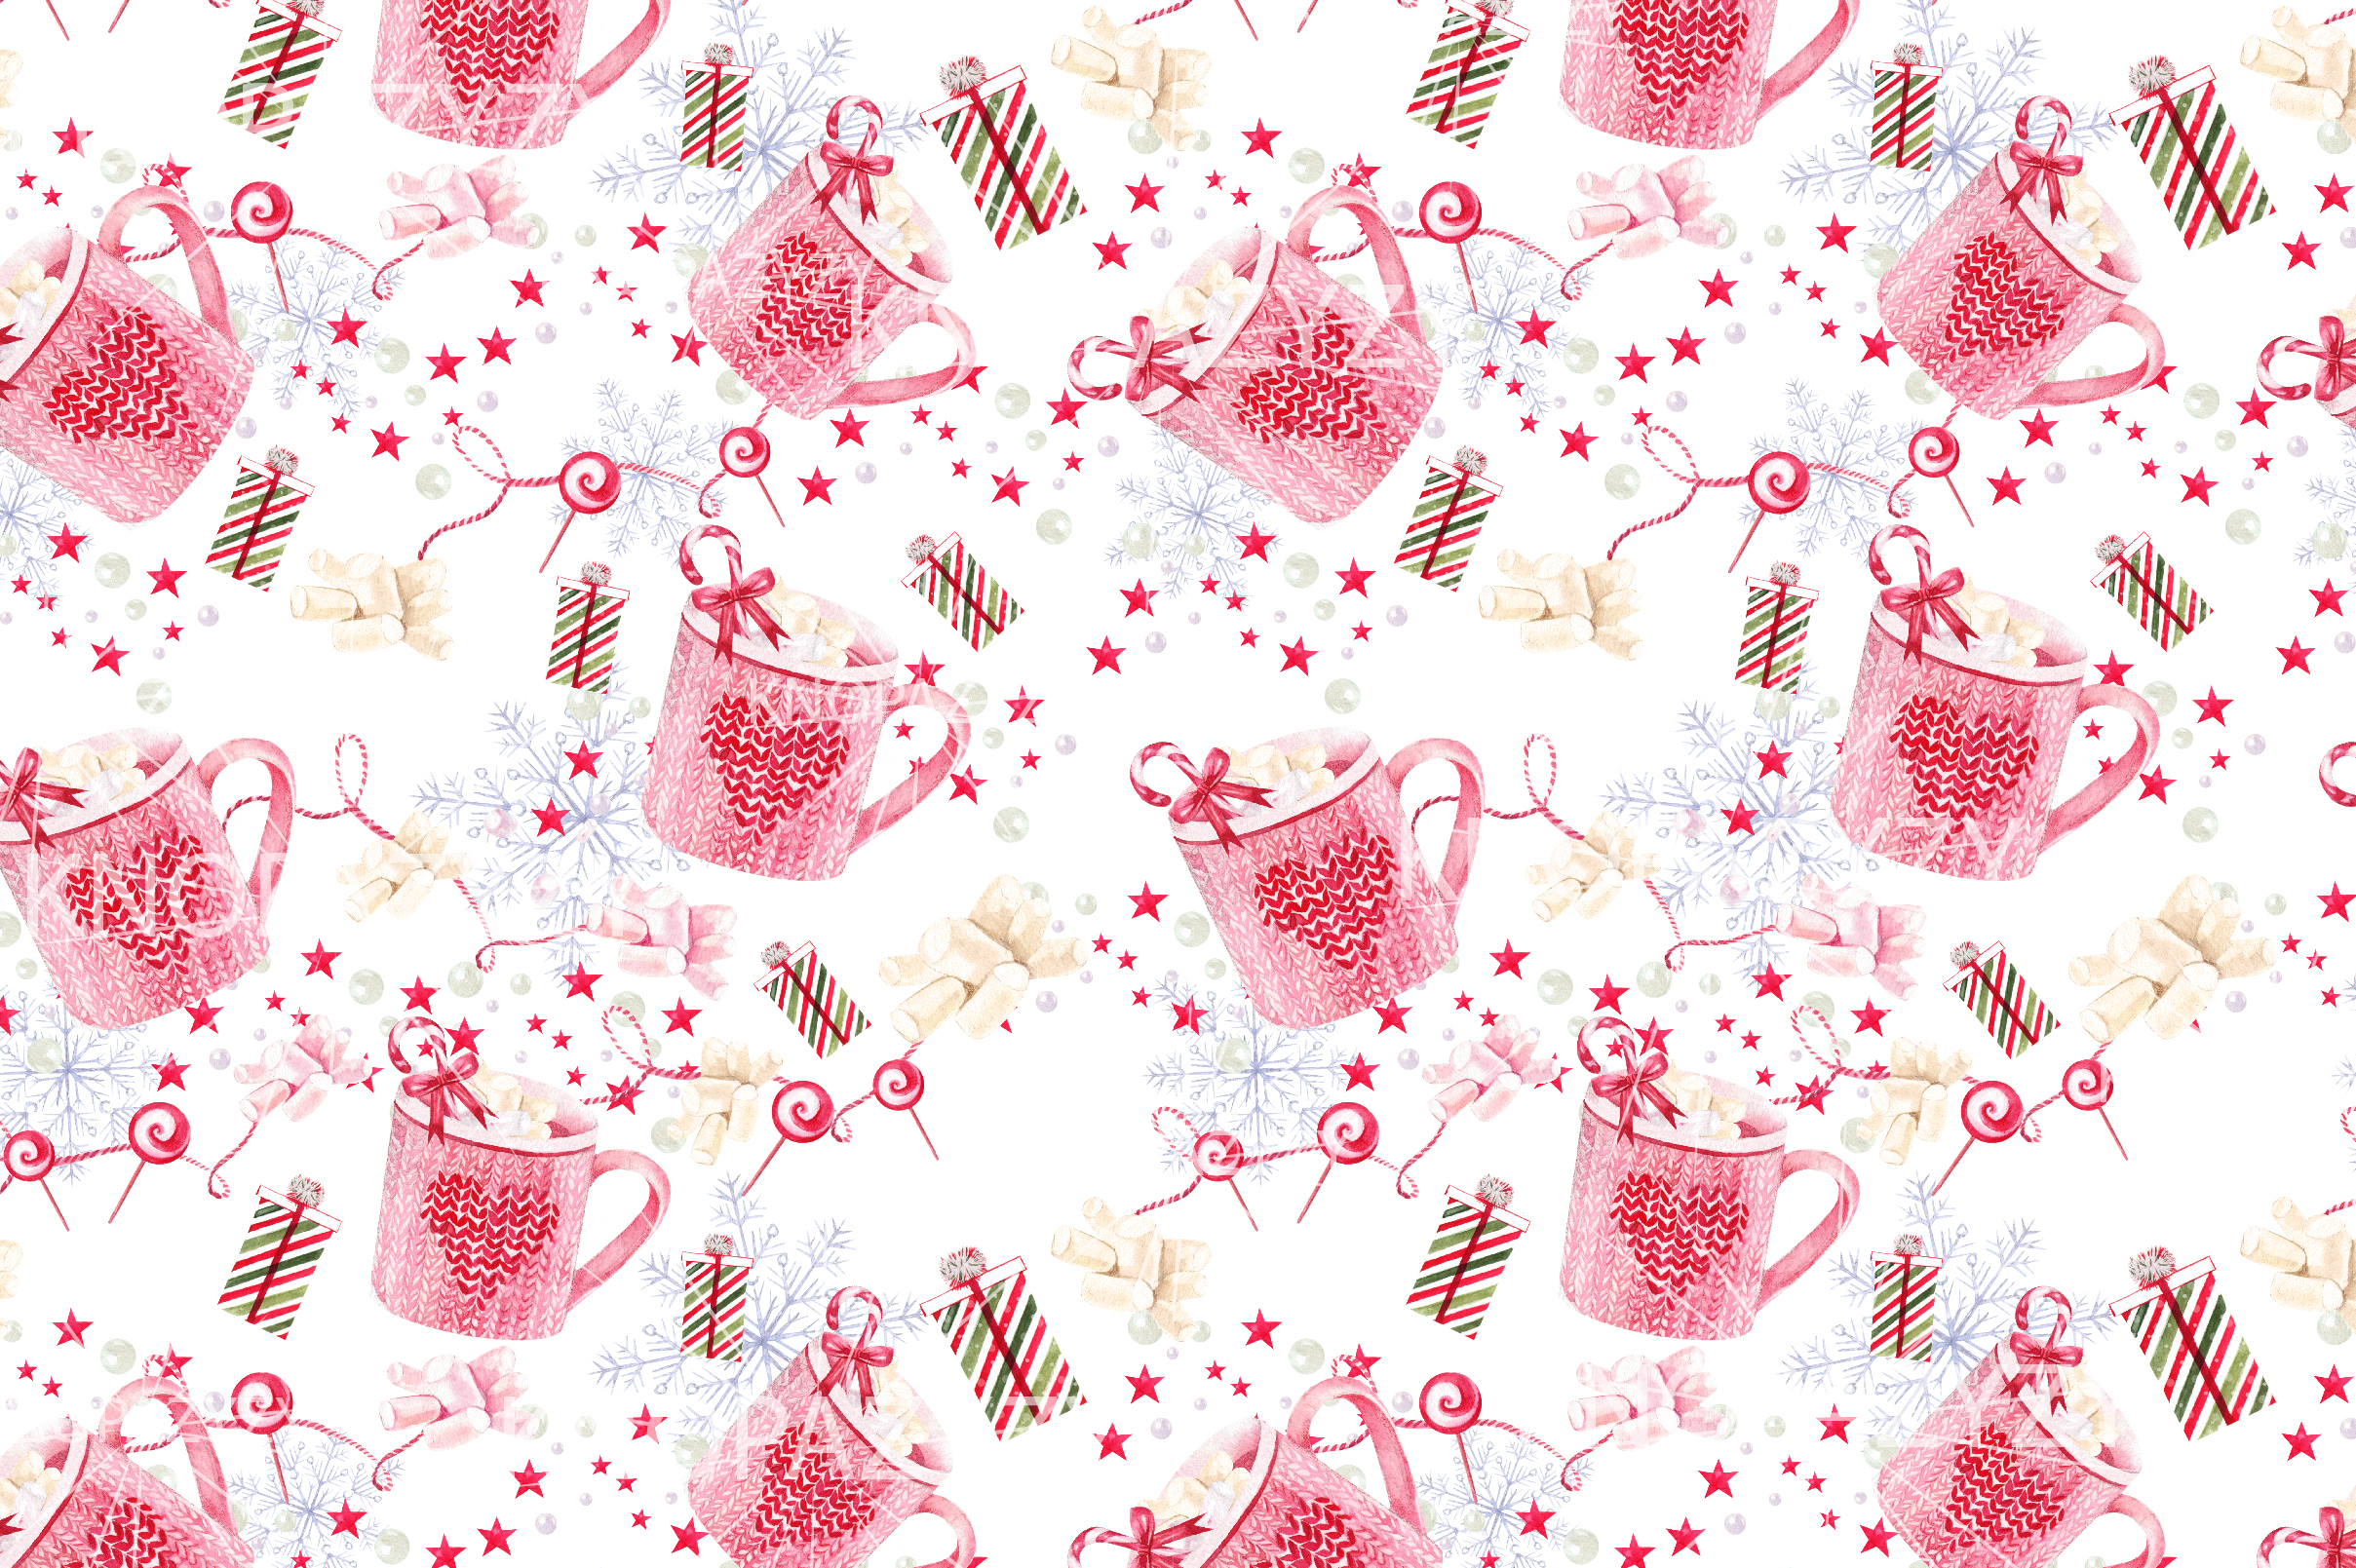 Hand Drawn Watercolor Christmas 13 Patterns example image 13